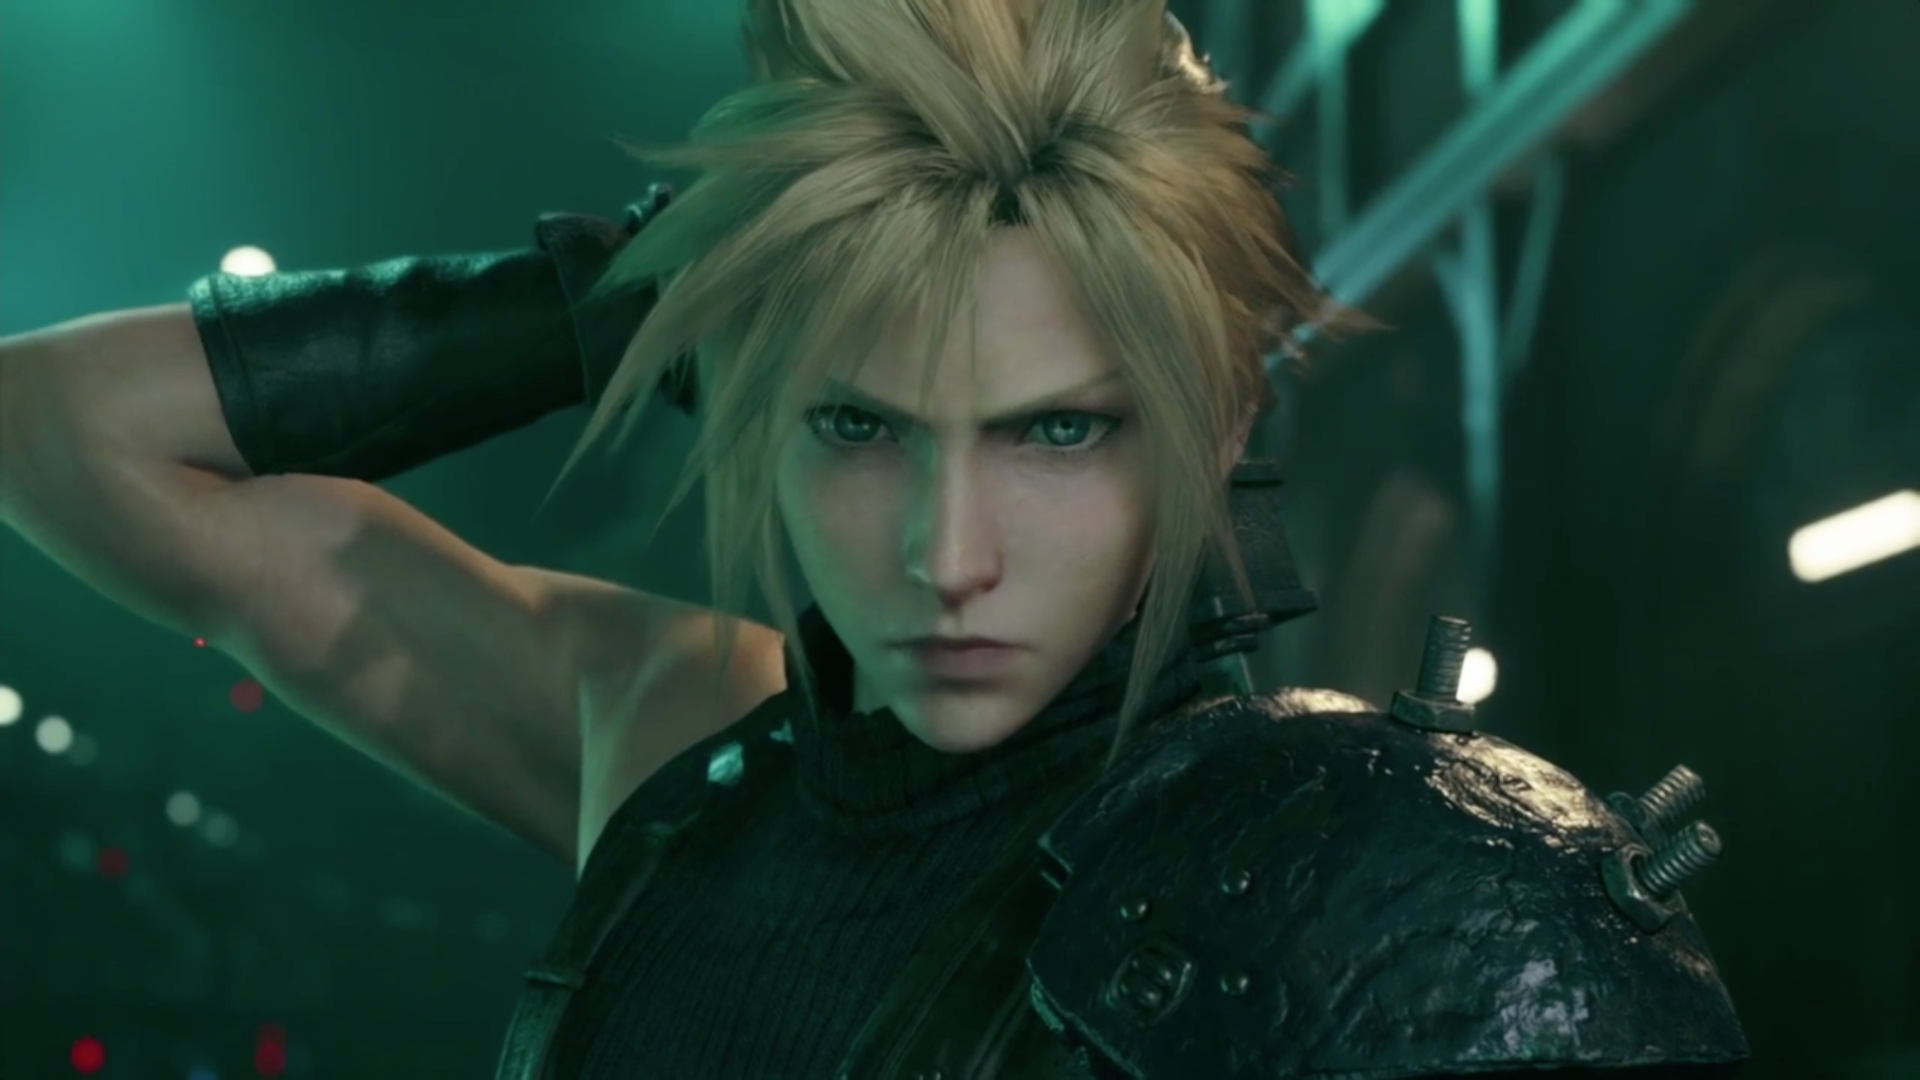 Final Fantasy VII Remake's Action-RPG Combat Detailed